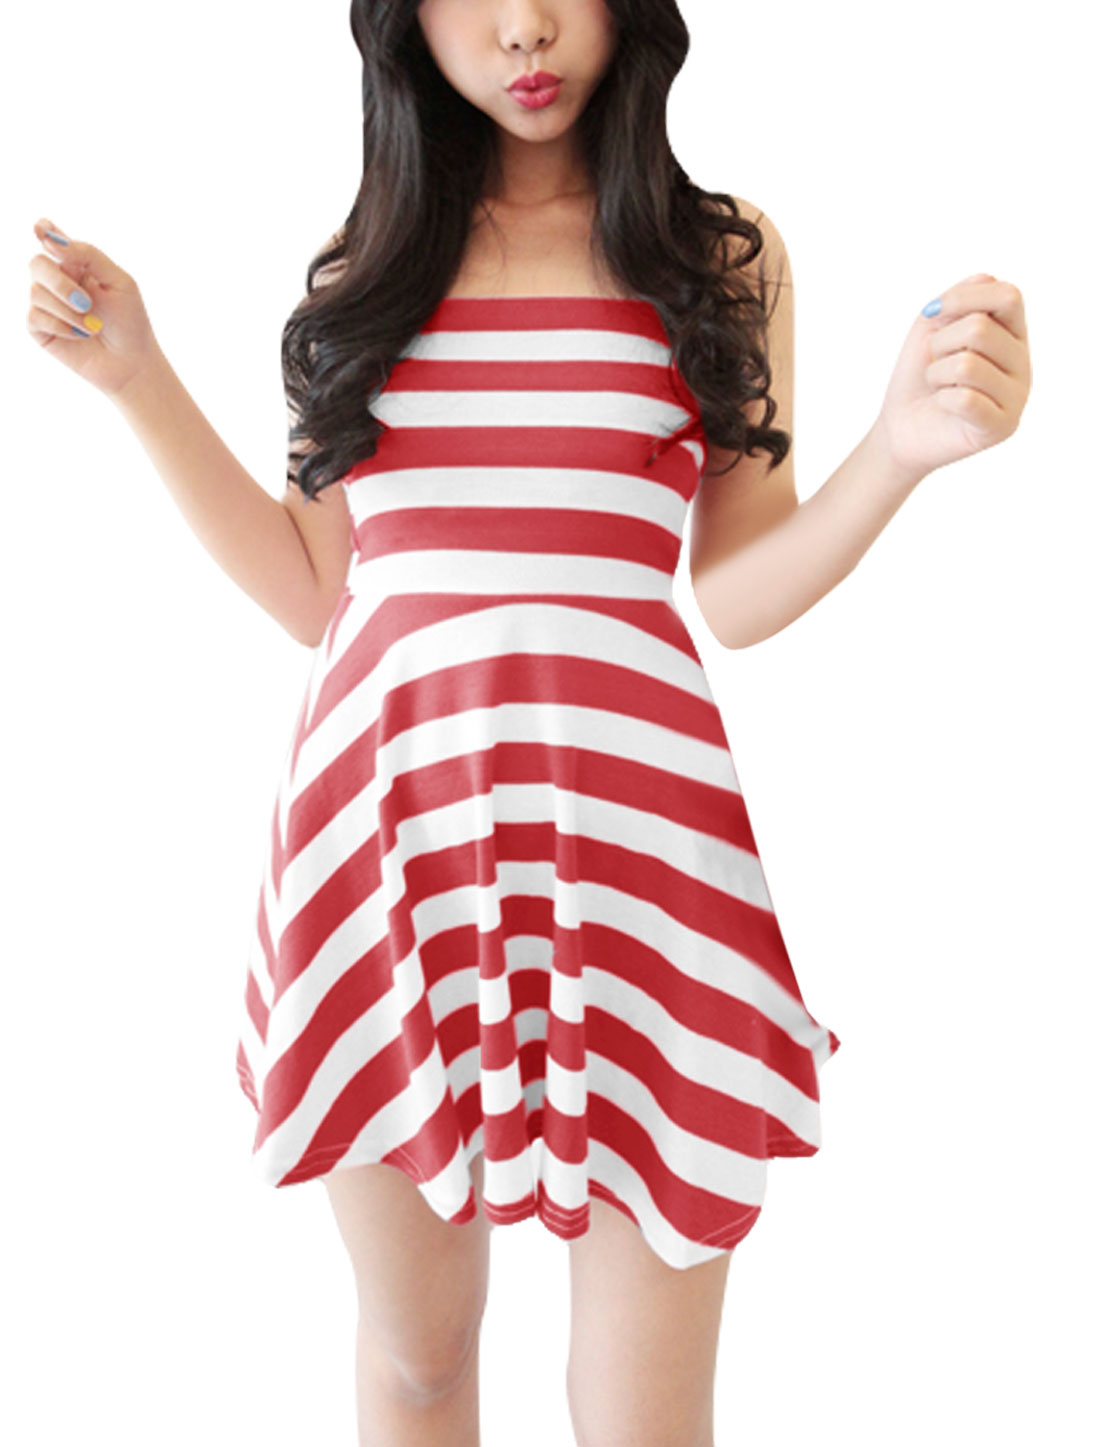 Ladies Backless Off The Shoulder Stripes Casual Stretchy Strapless Dress Red White XS